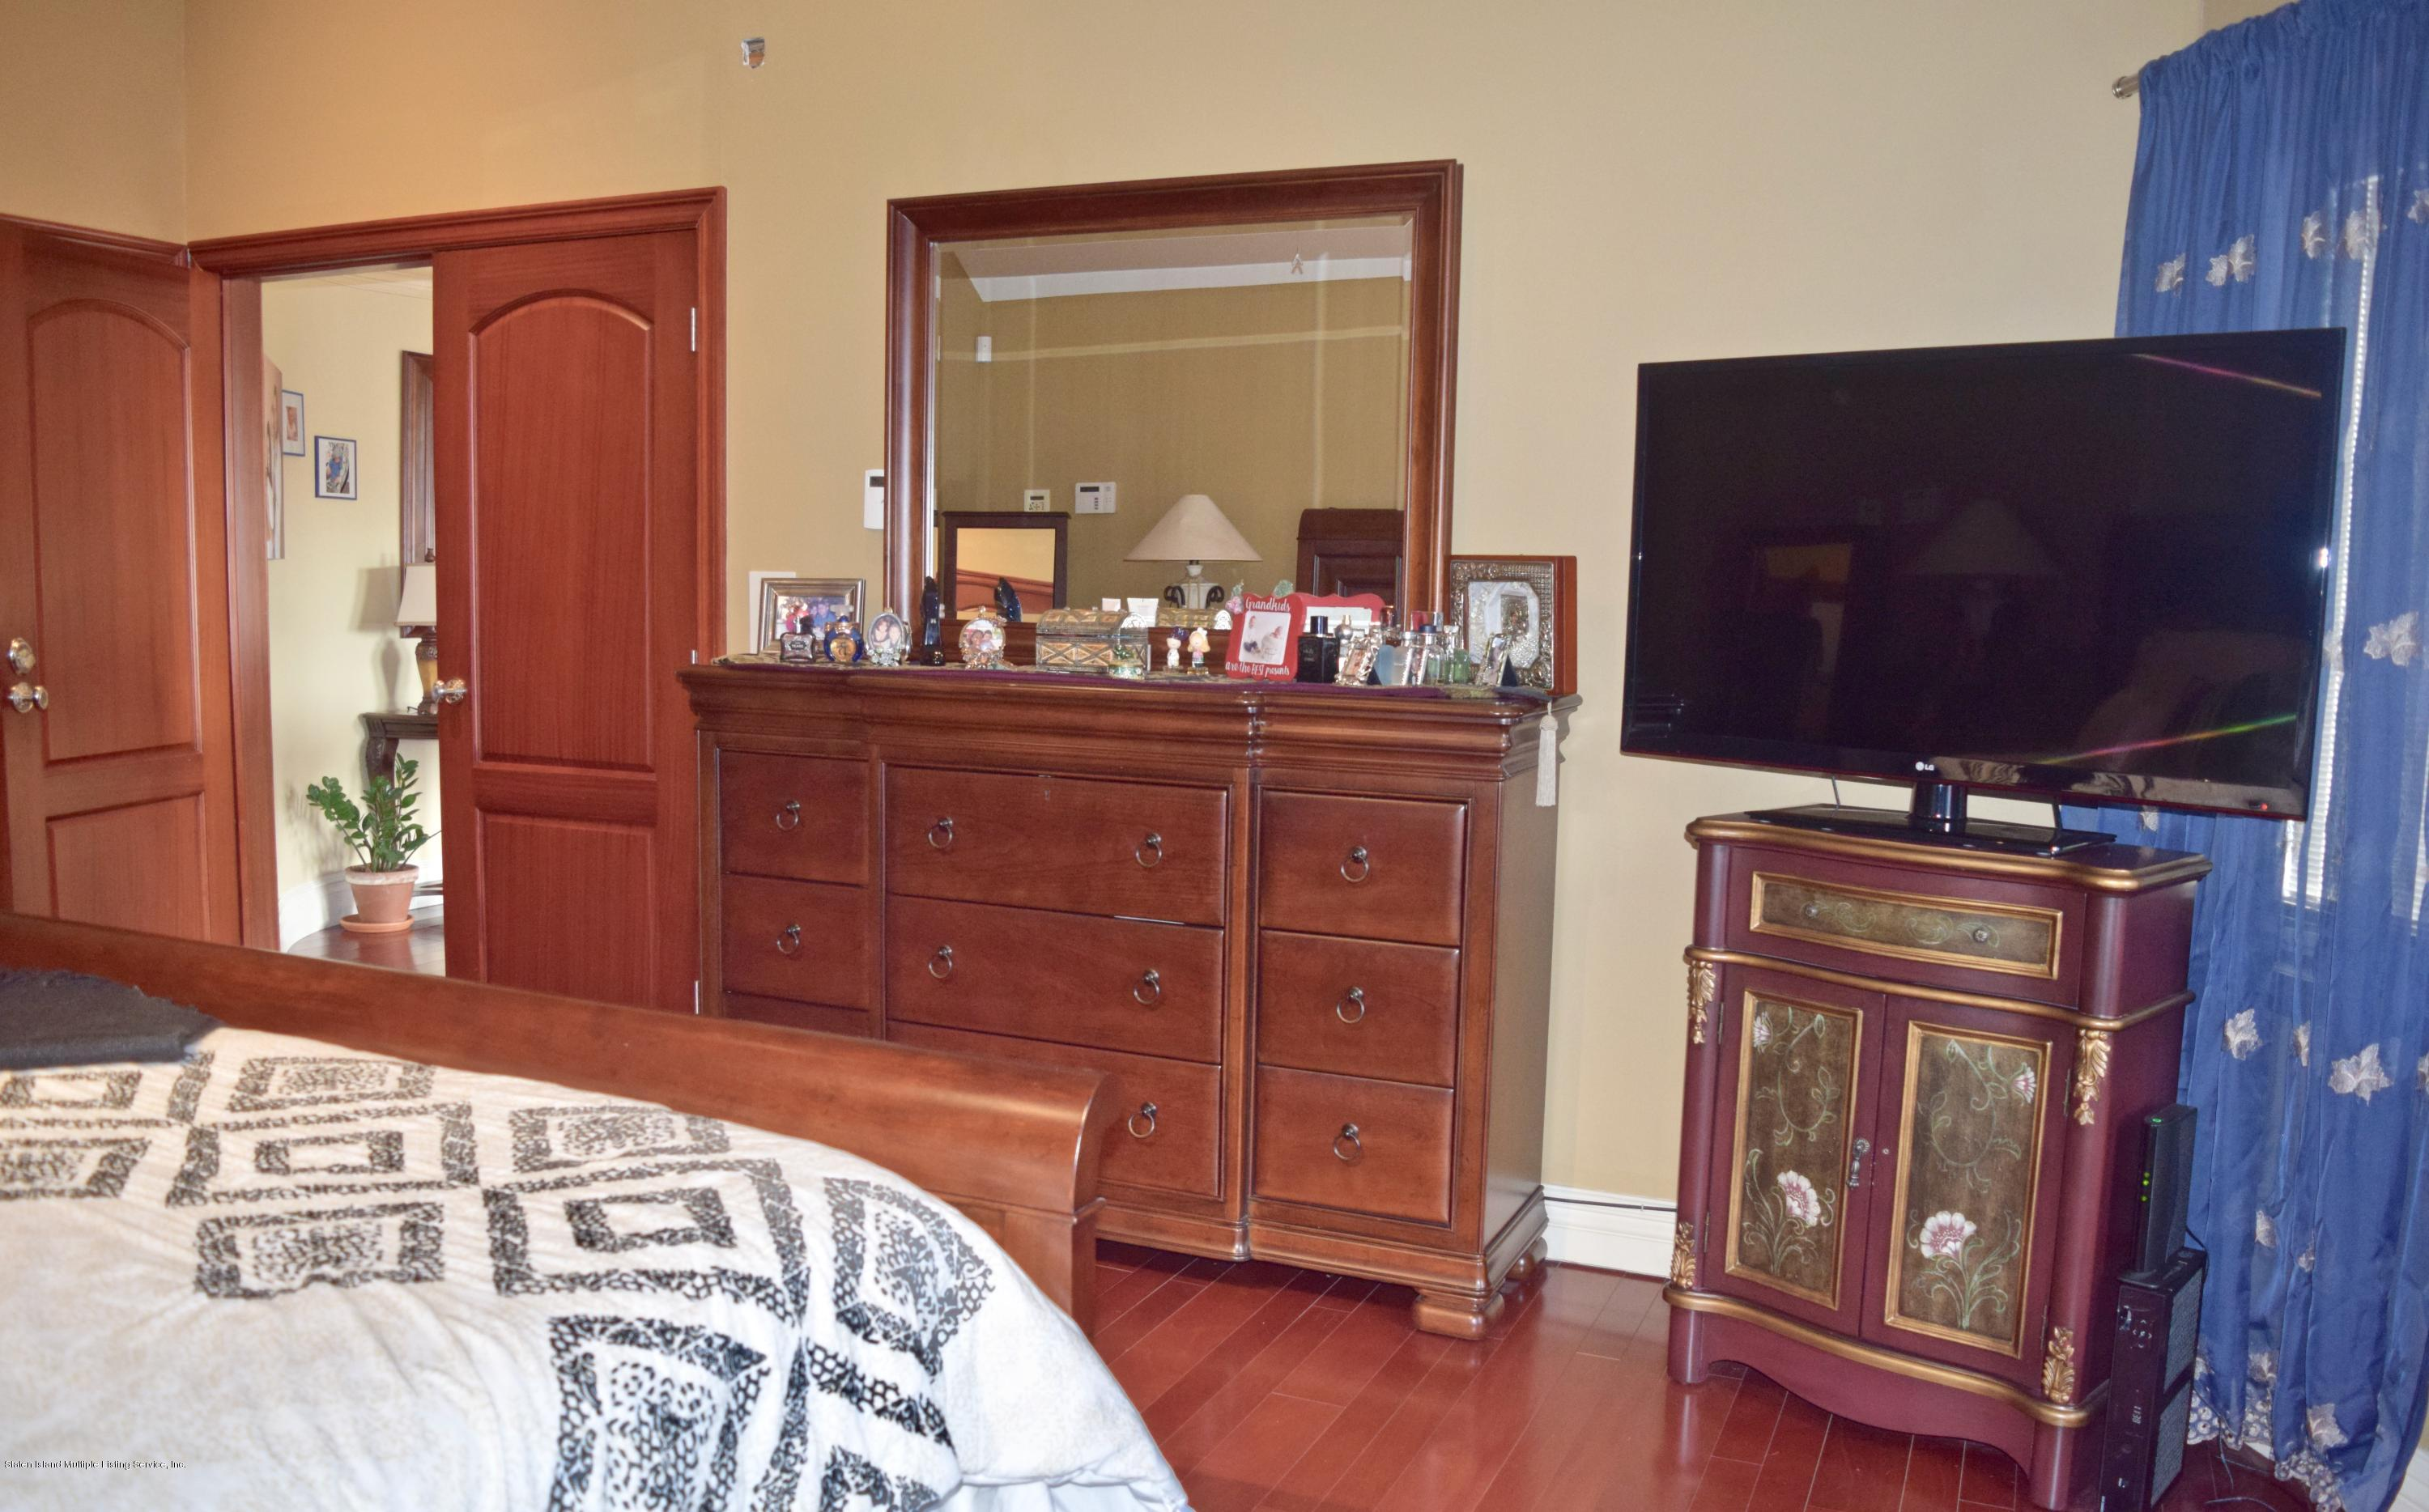 Single Family - Detached 107 Northern Boulevard  Staten Island, NY 10301, MLS-1124986-12